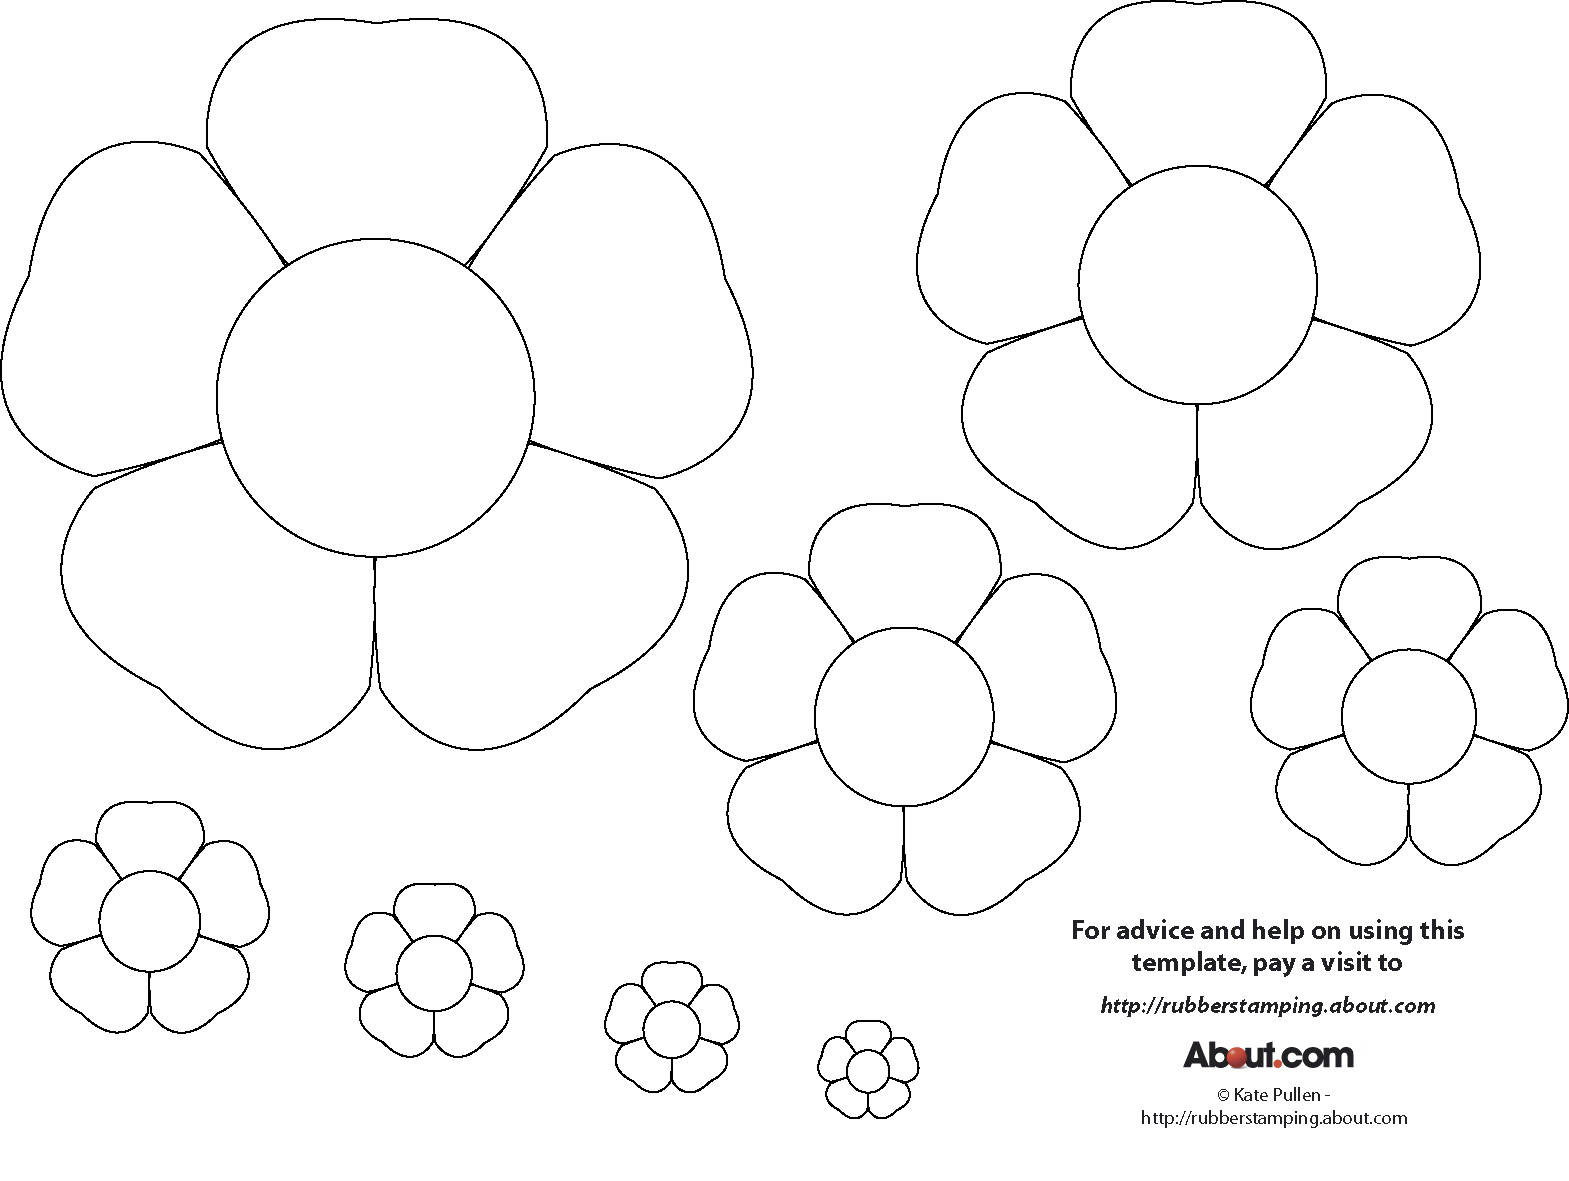 Amici bello fabric flower pronofoot35fo Image collections